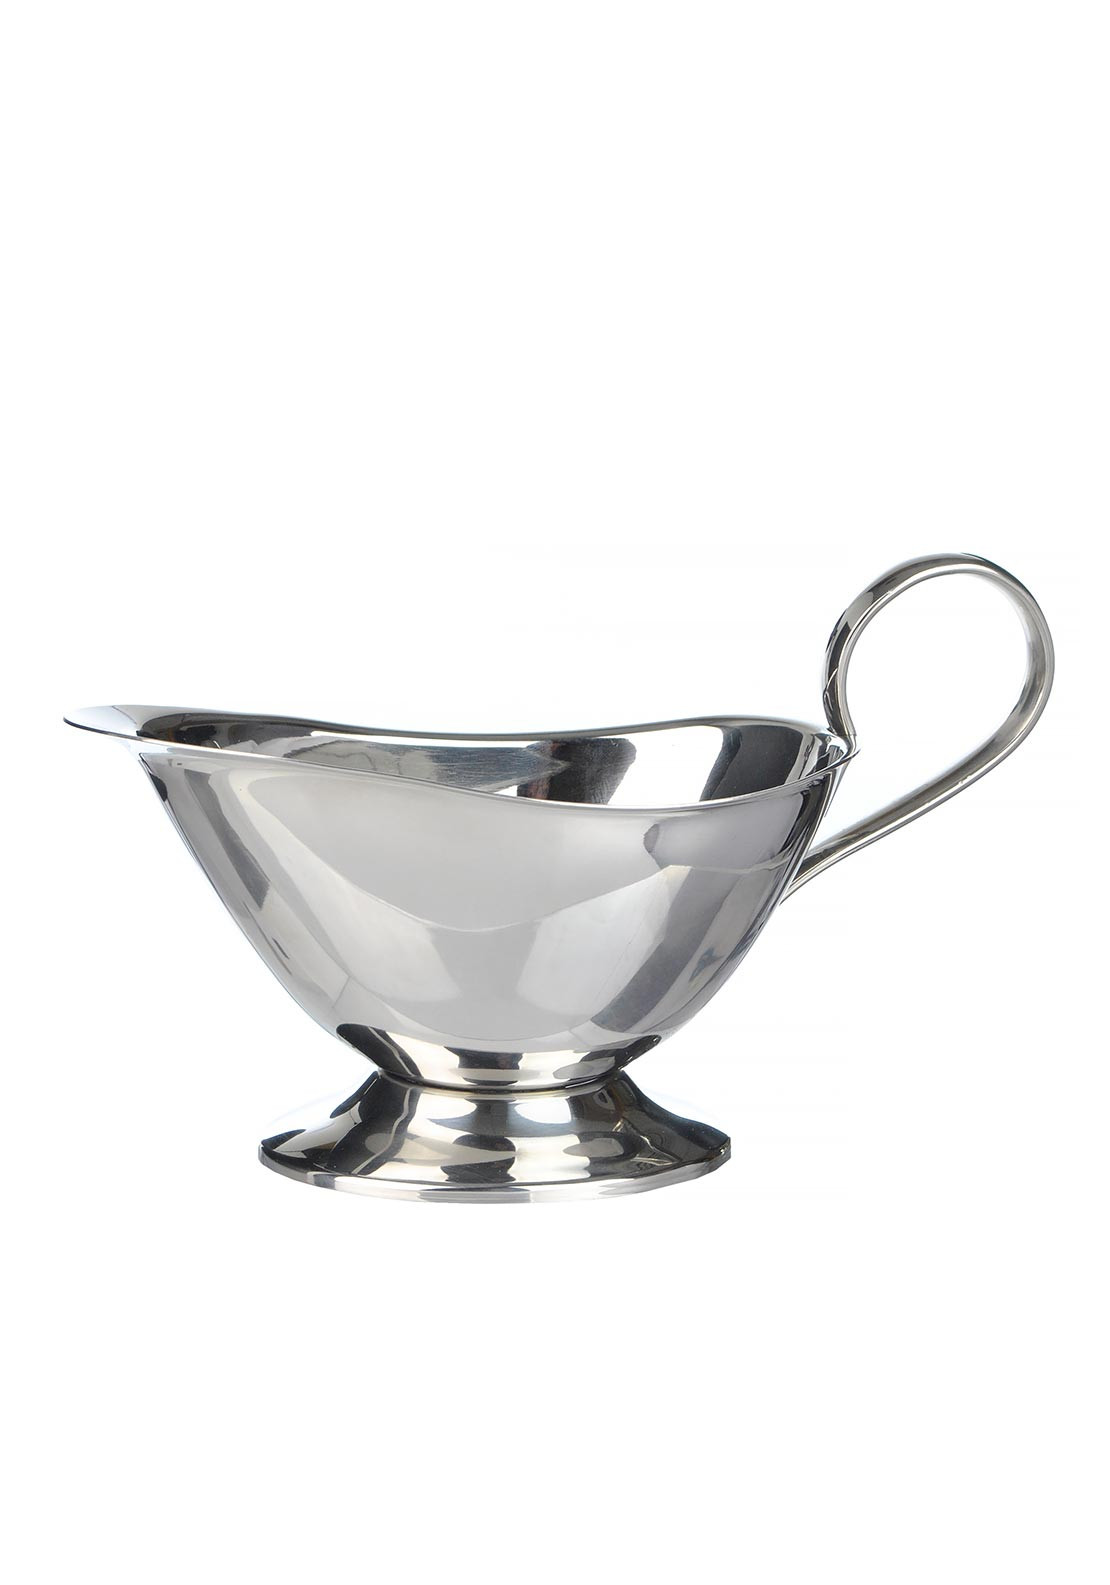 Judge Stainless Steel Gravy Boat, 16oz